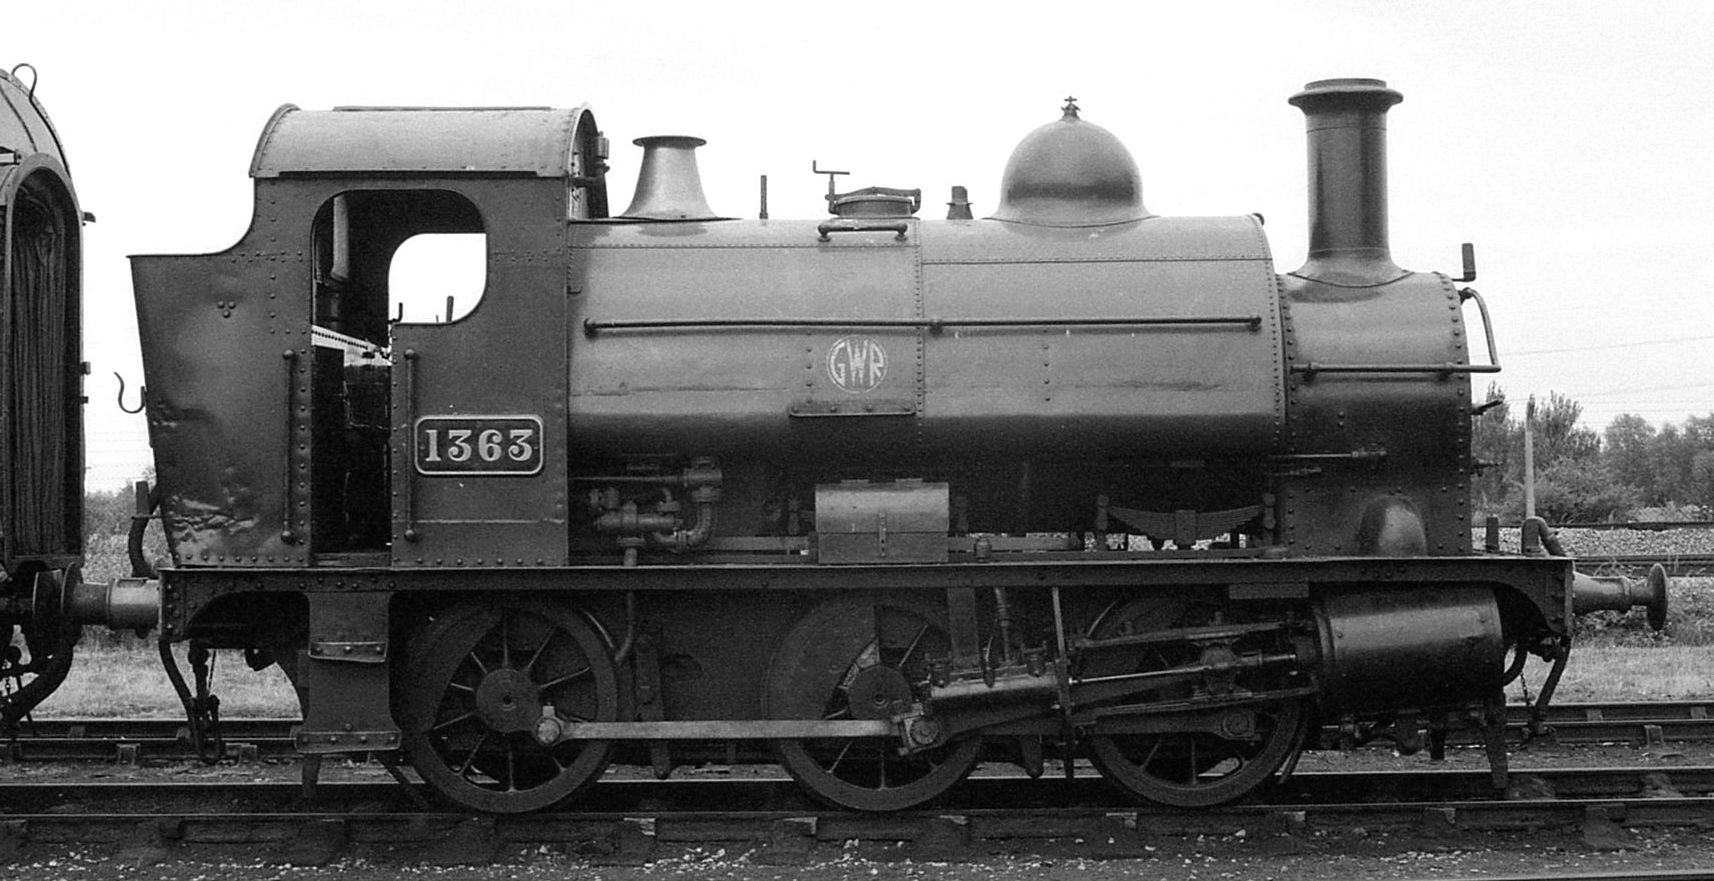 No. 1363 at Didcot Railway Centre. Date unknown. © Barry Lewis